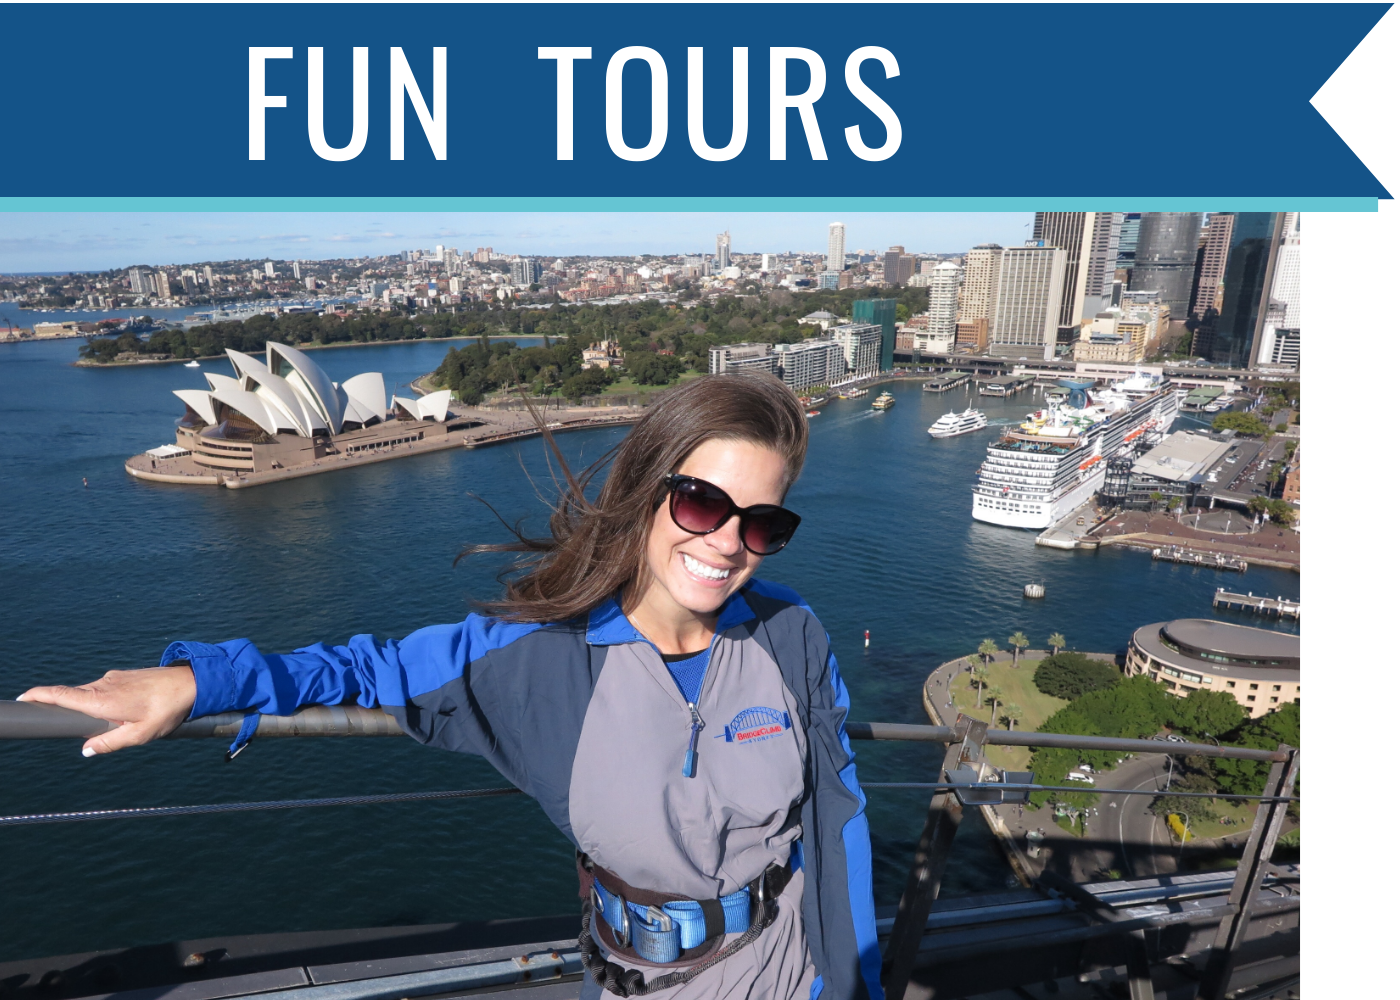 Find fun activities and tours for your next trip!